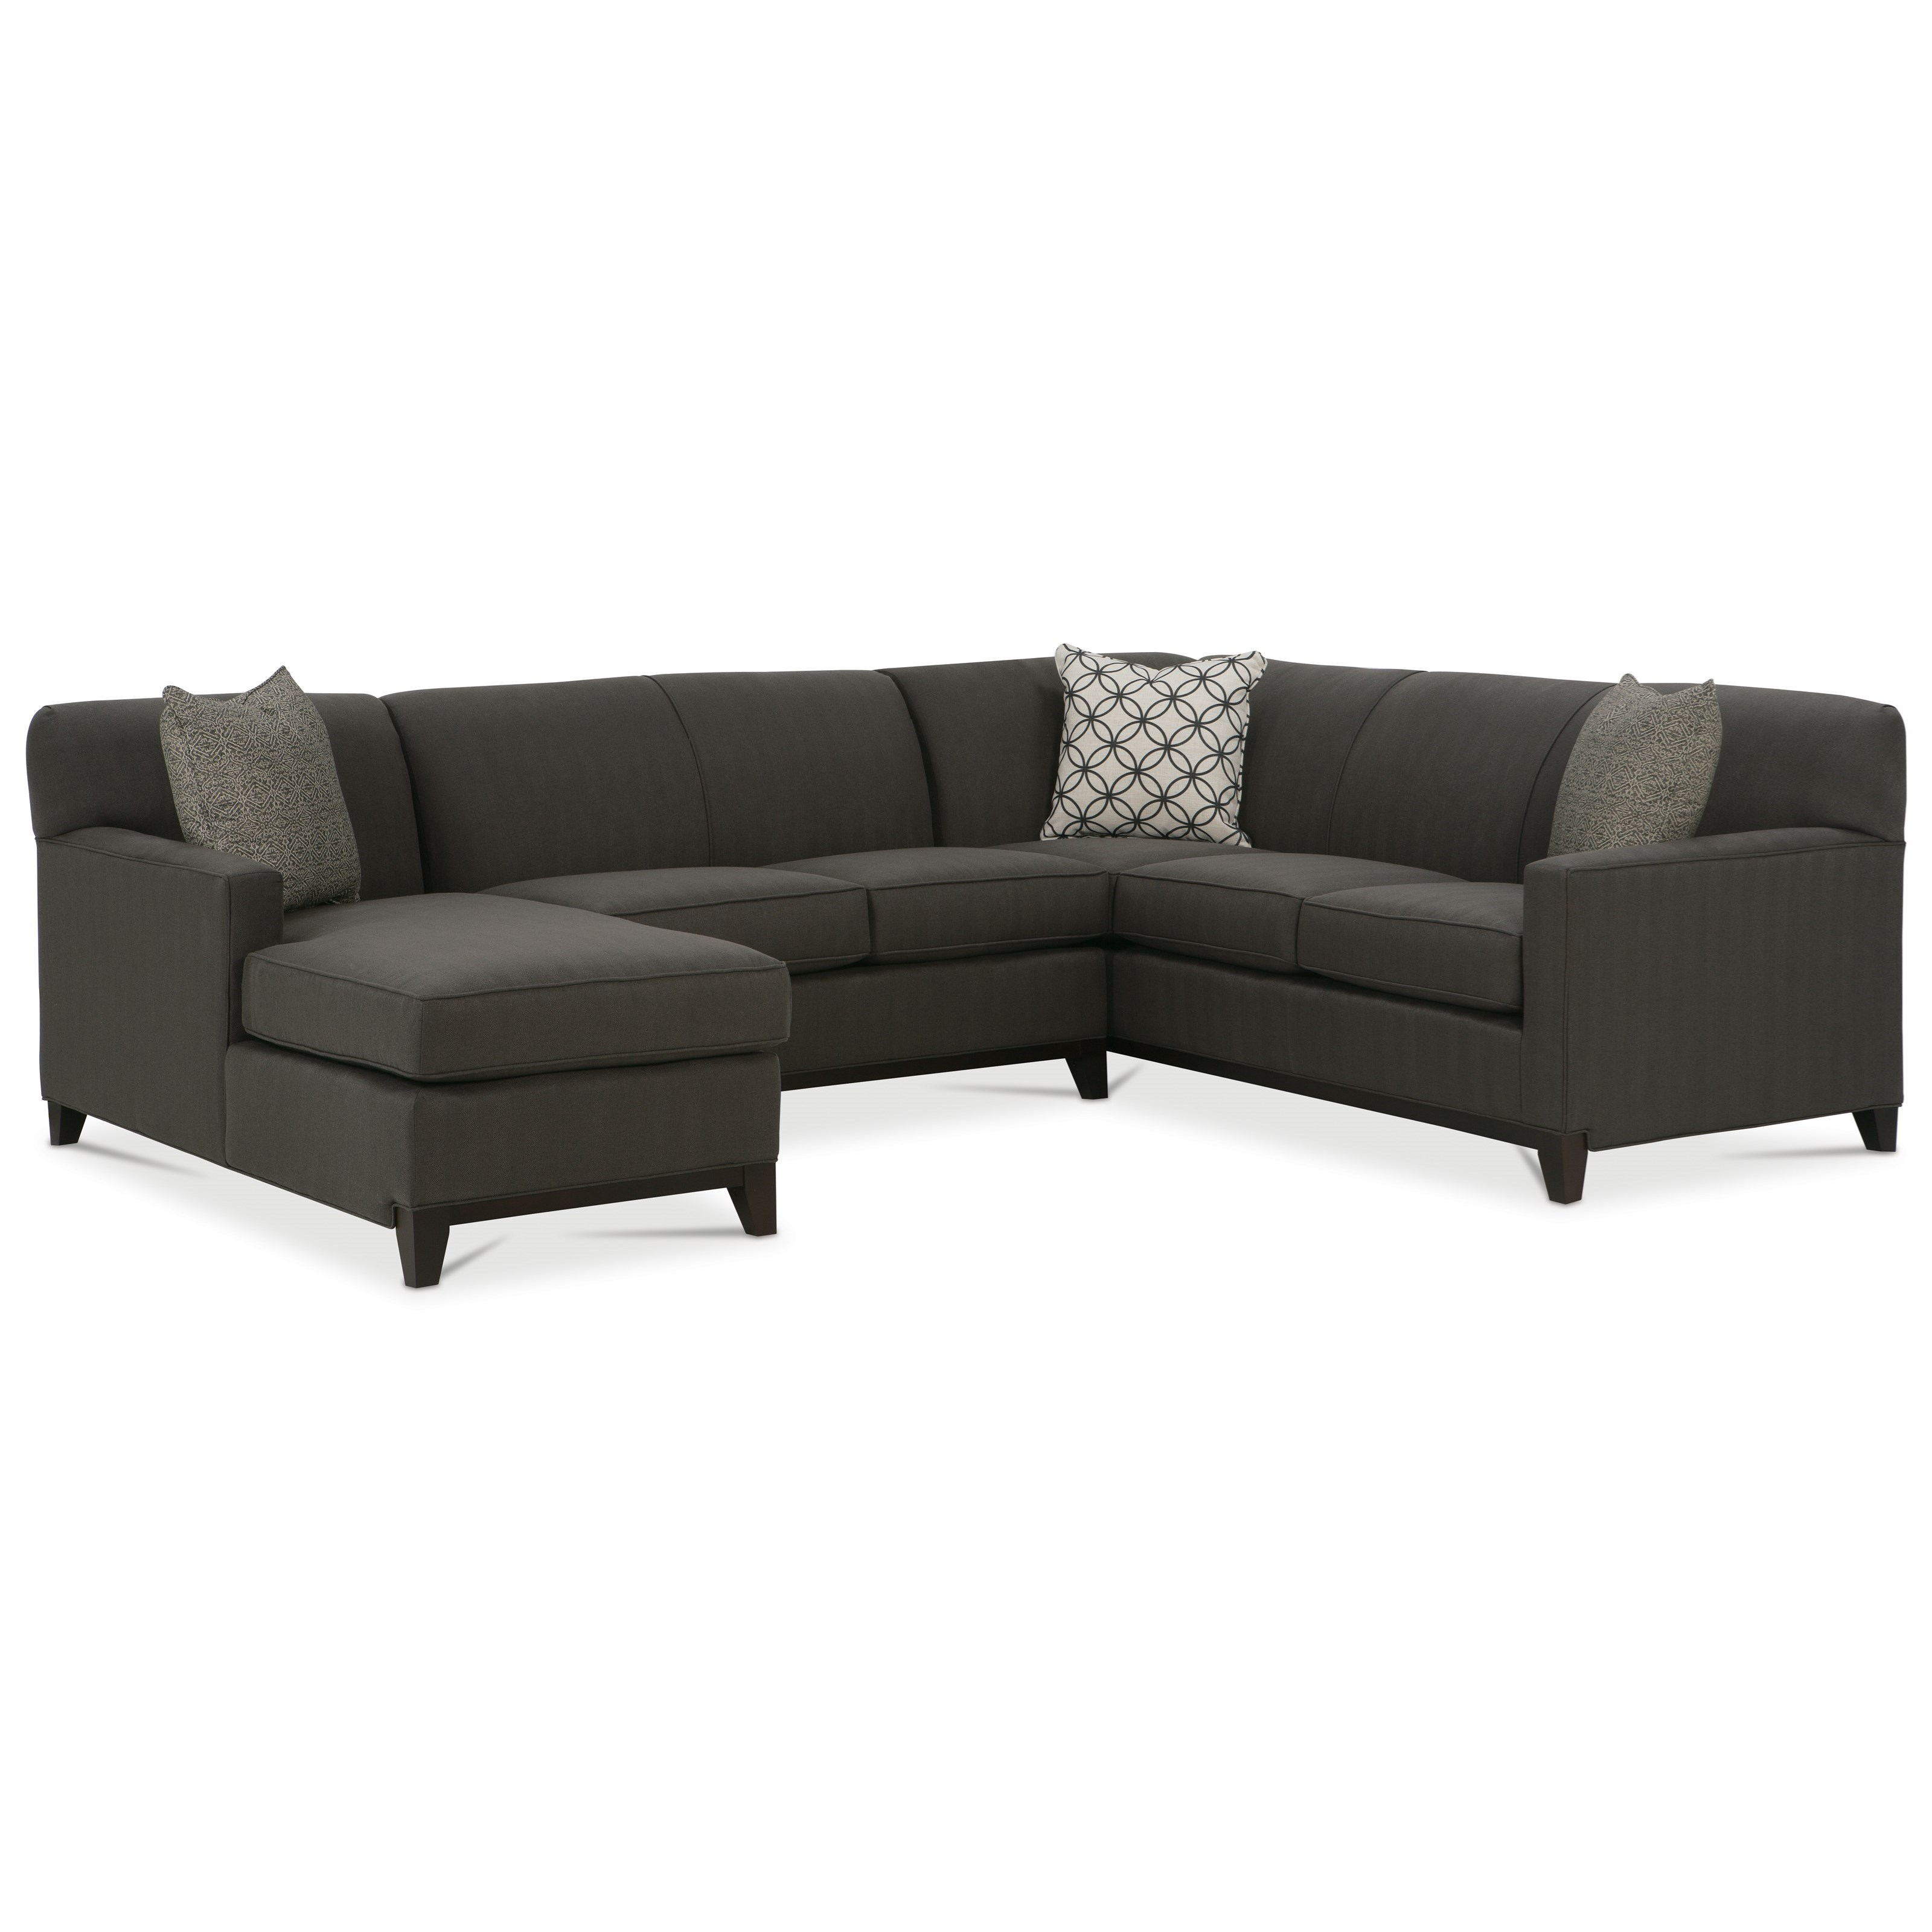 Rowe Martin 3 Piece Sectional Sofa | Belfort Furniture | Sectional Sofas